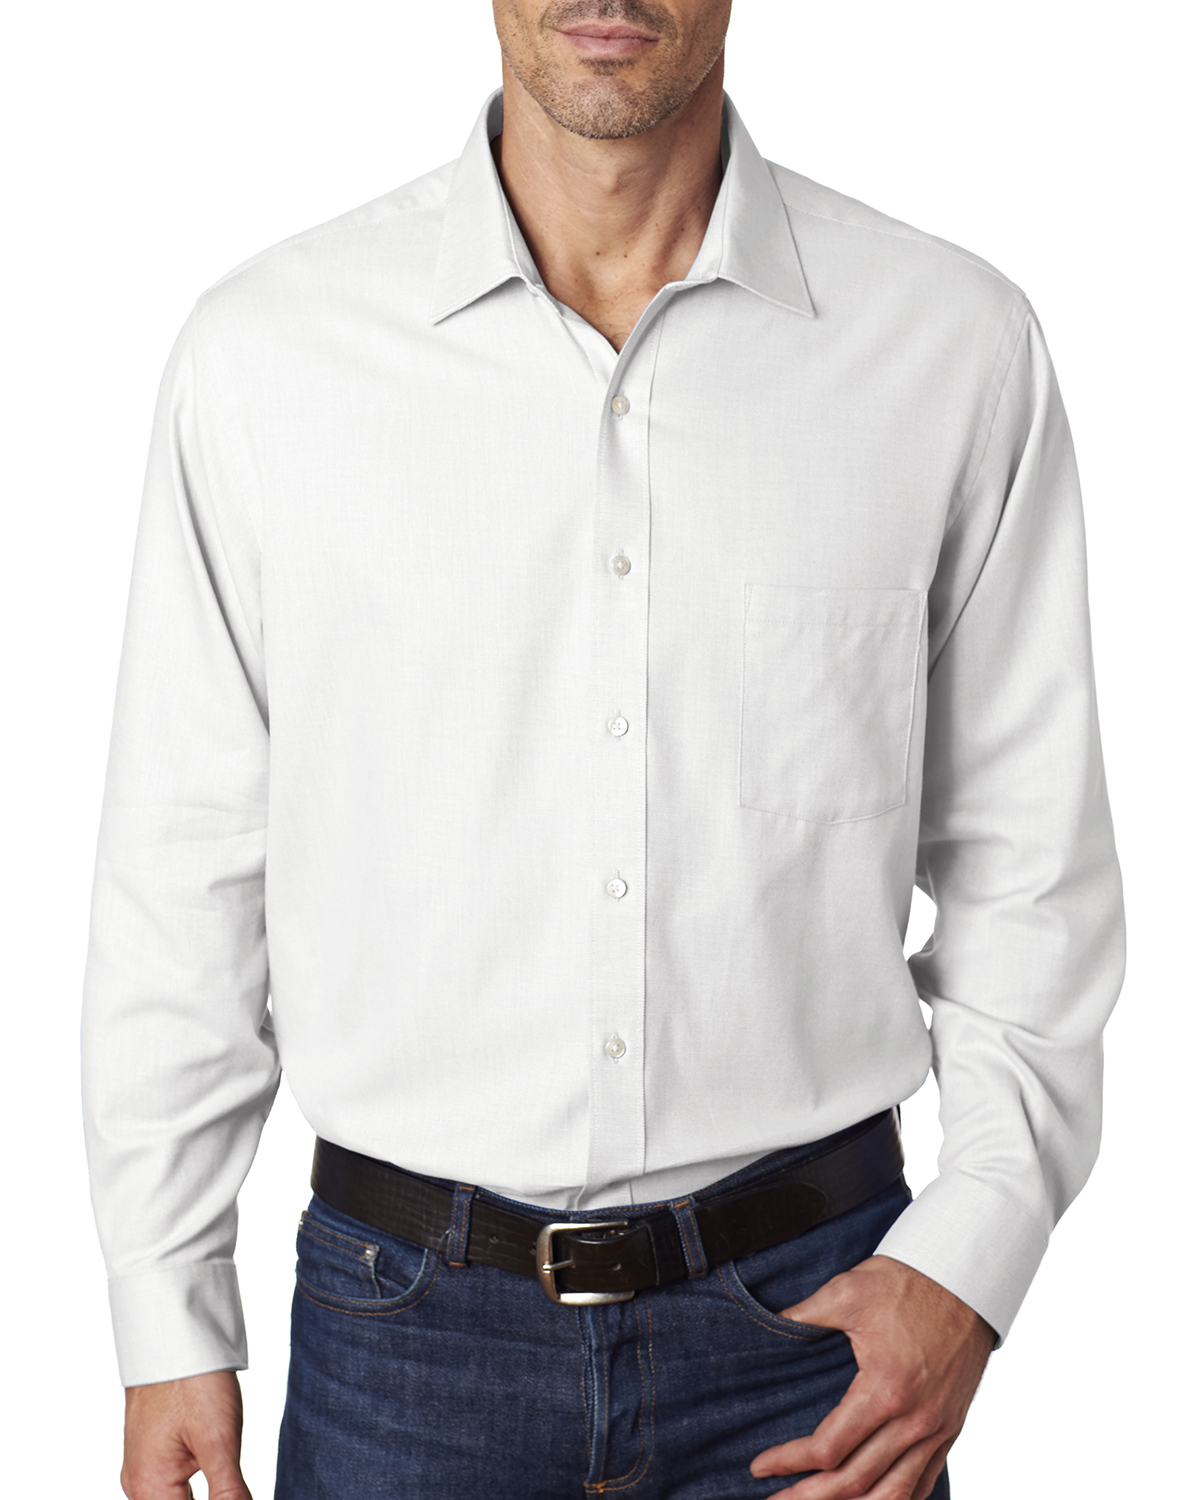 Van Heusen V0399 - Men's Long-Sleeve Ring-Spun Performance Twill Woven Shirt